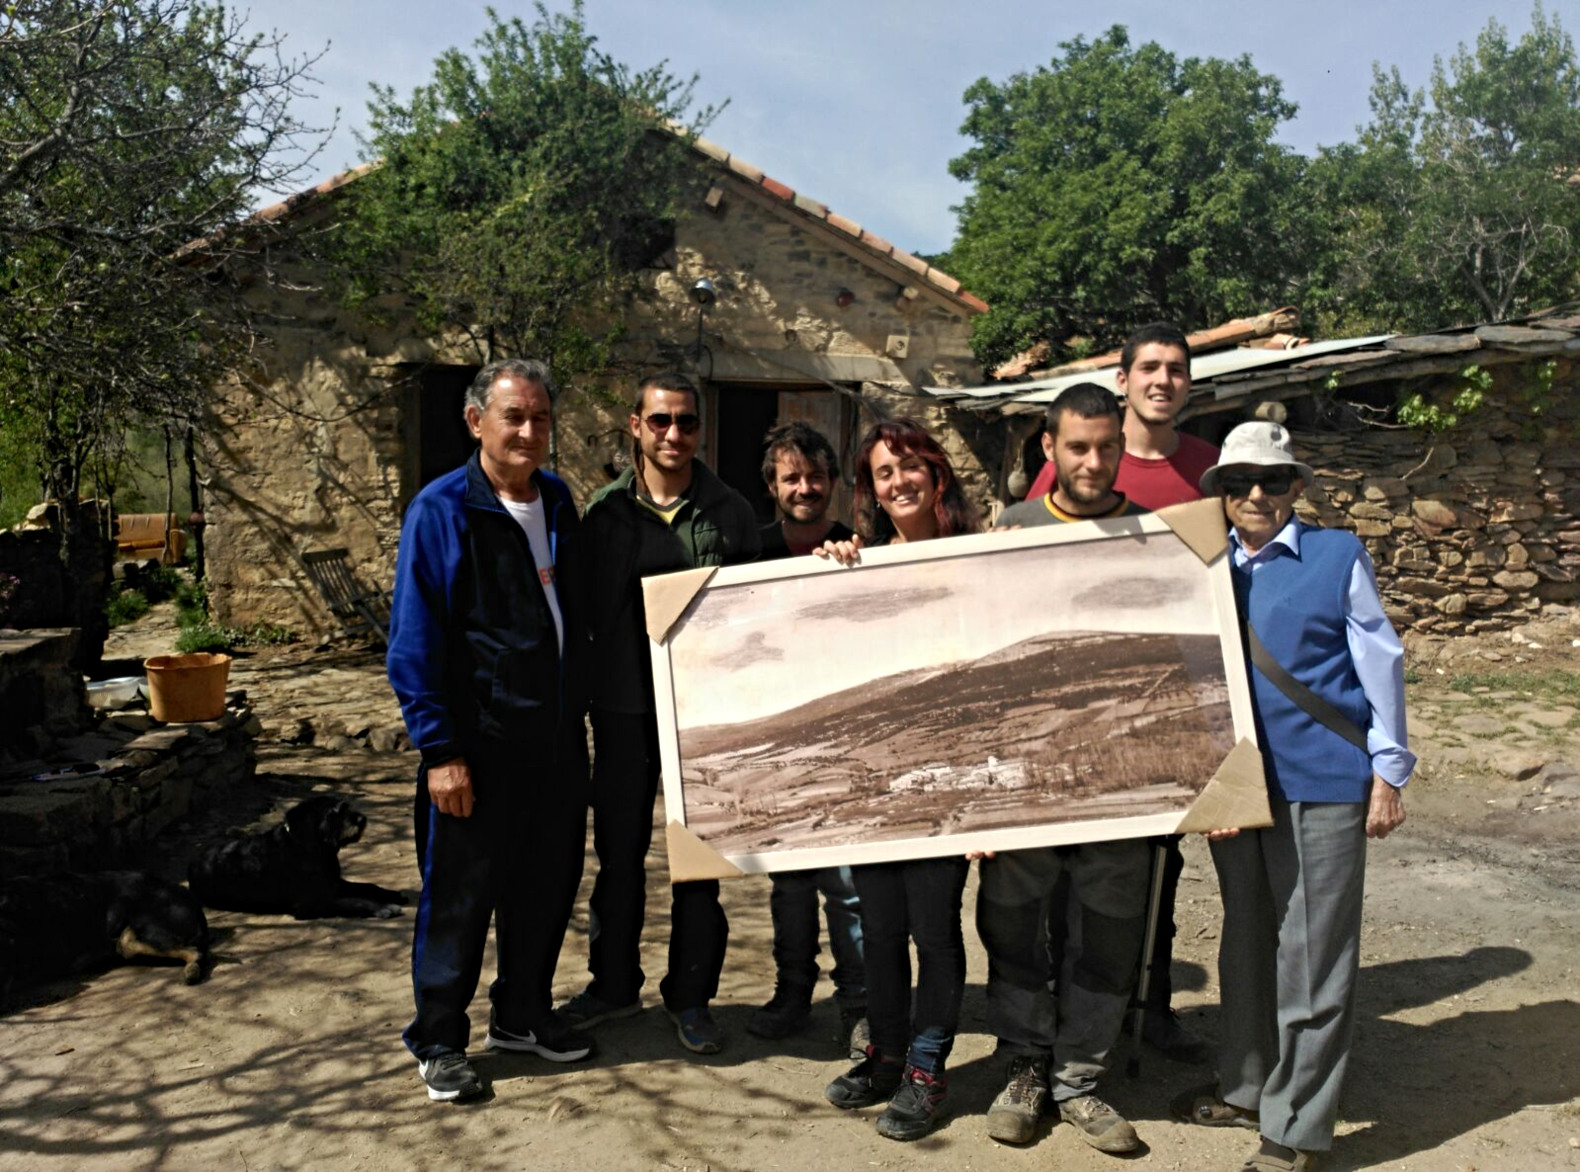 Eco-group faces imprisonment after reviving an abandoned Spanish village